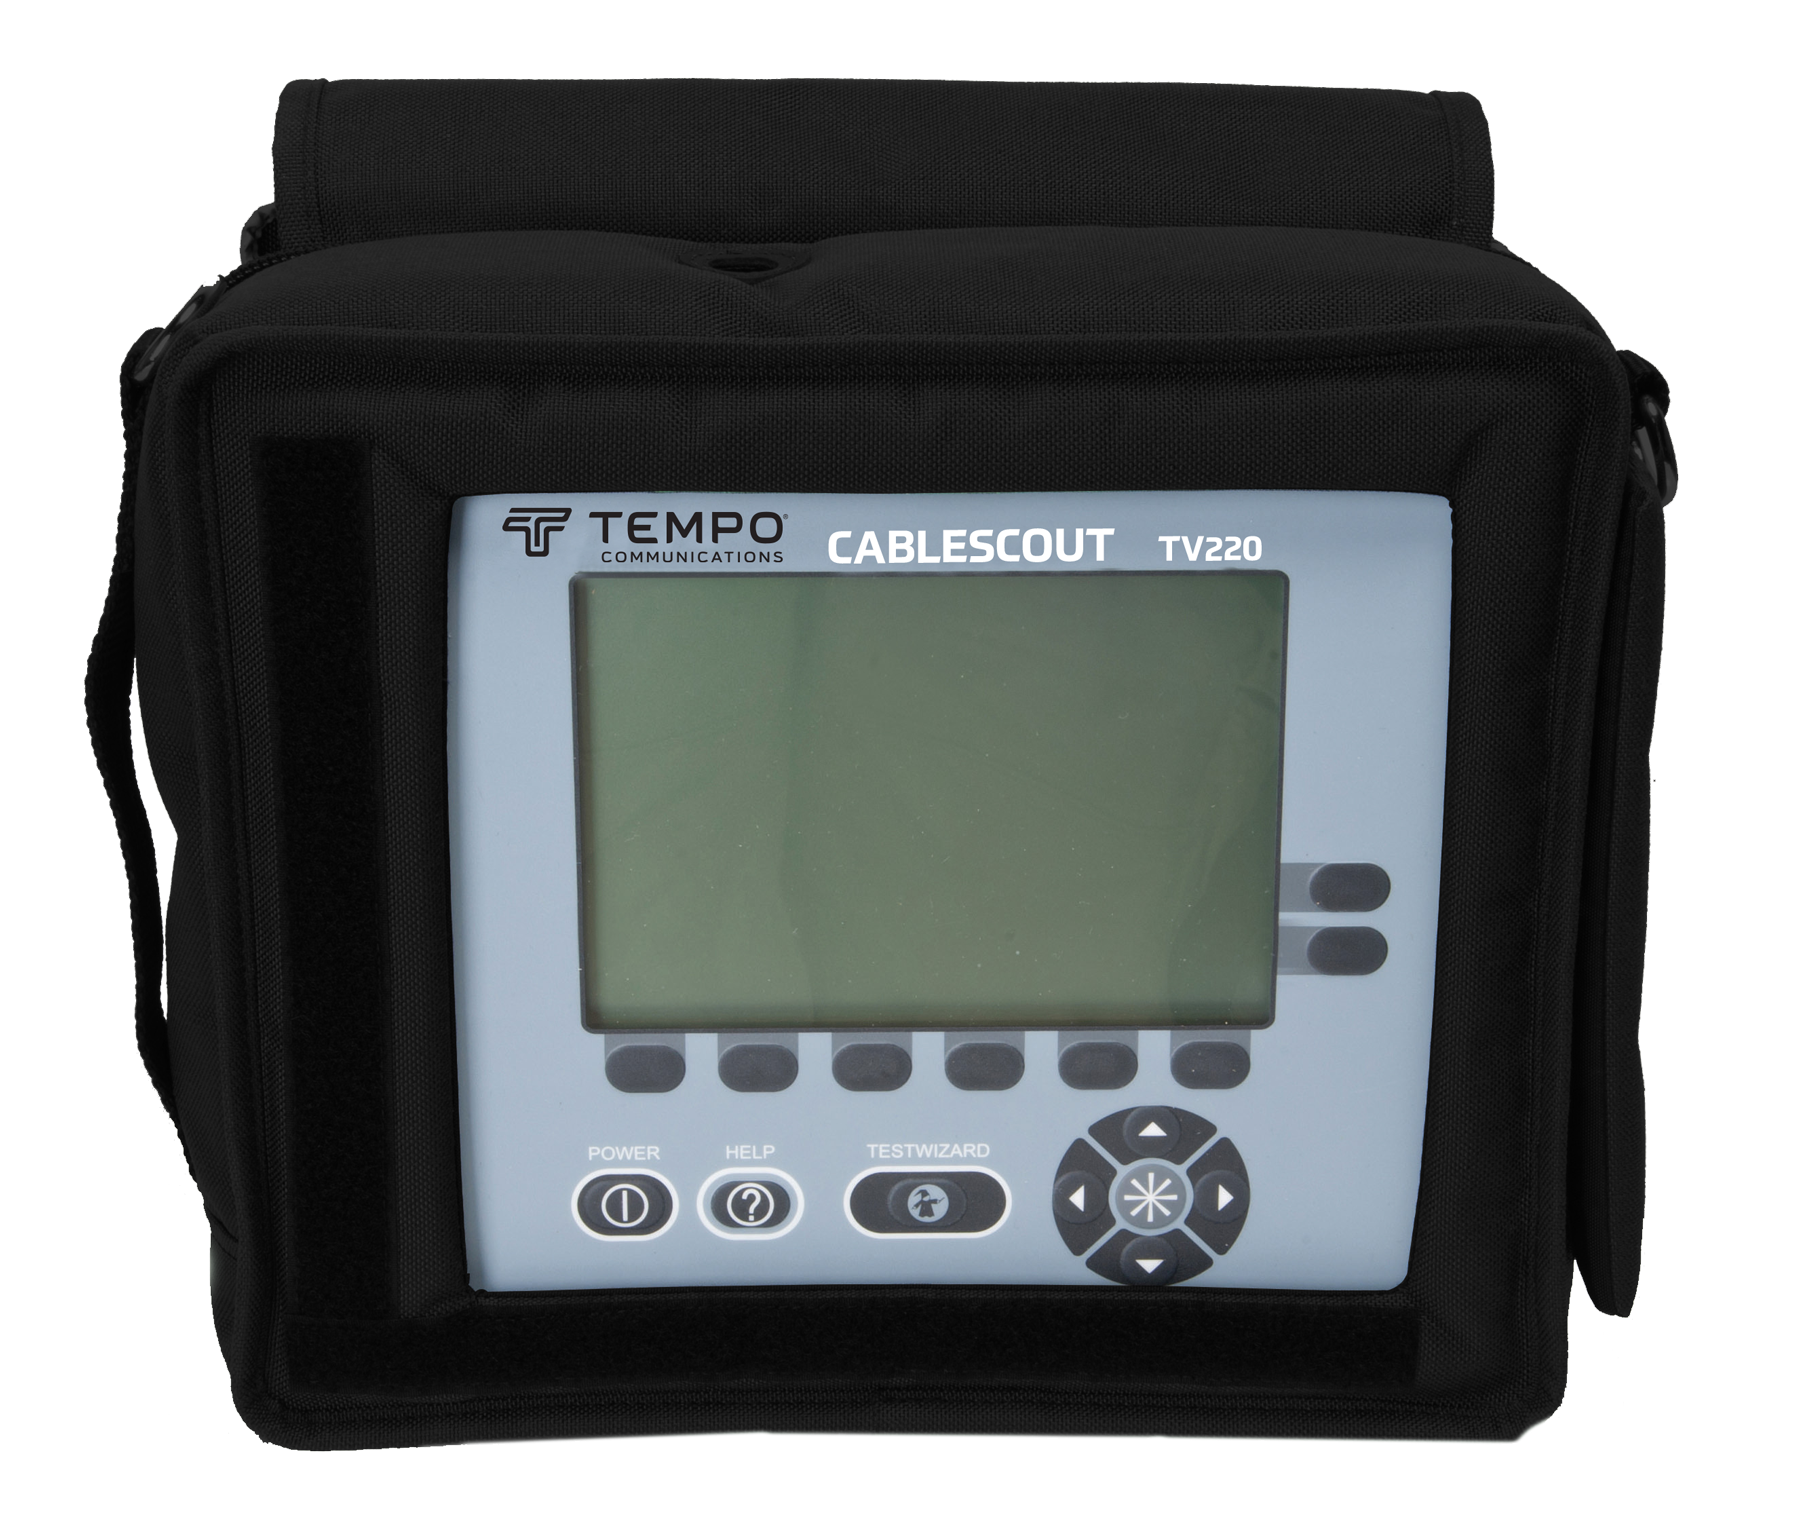 TV220 CableScout Time-Domain Reflectometer (TDR)